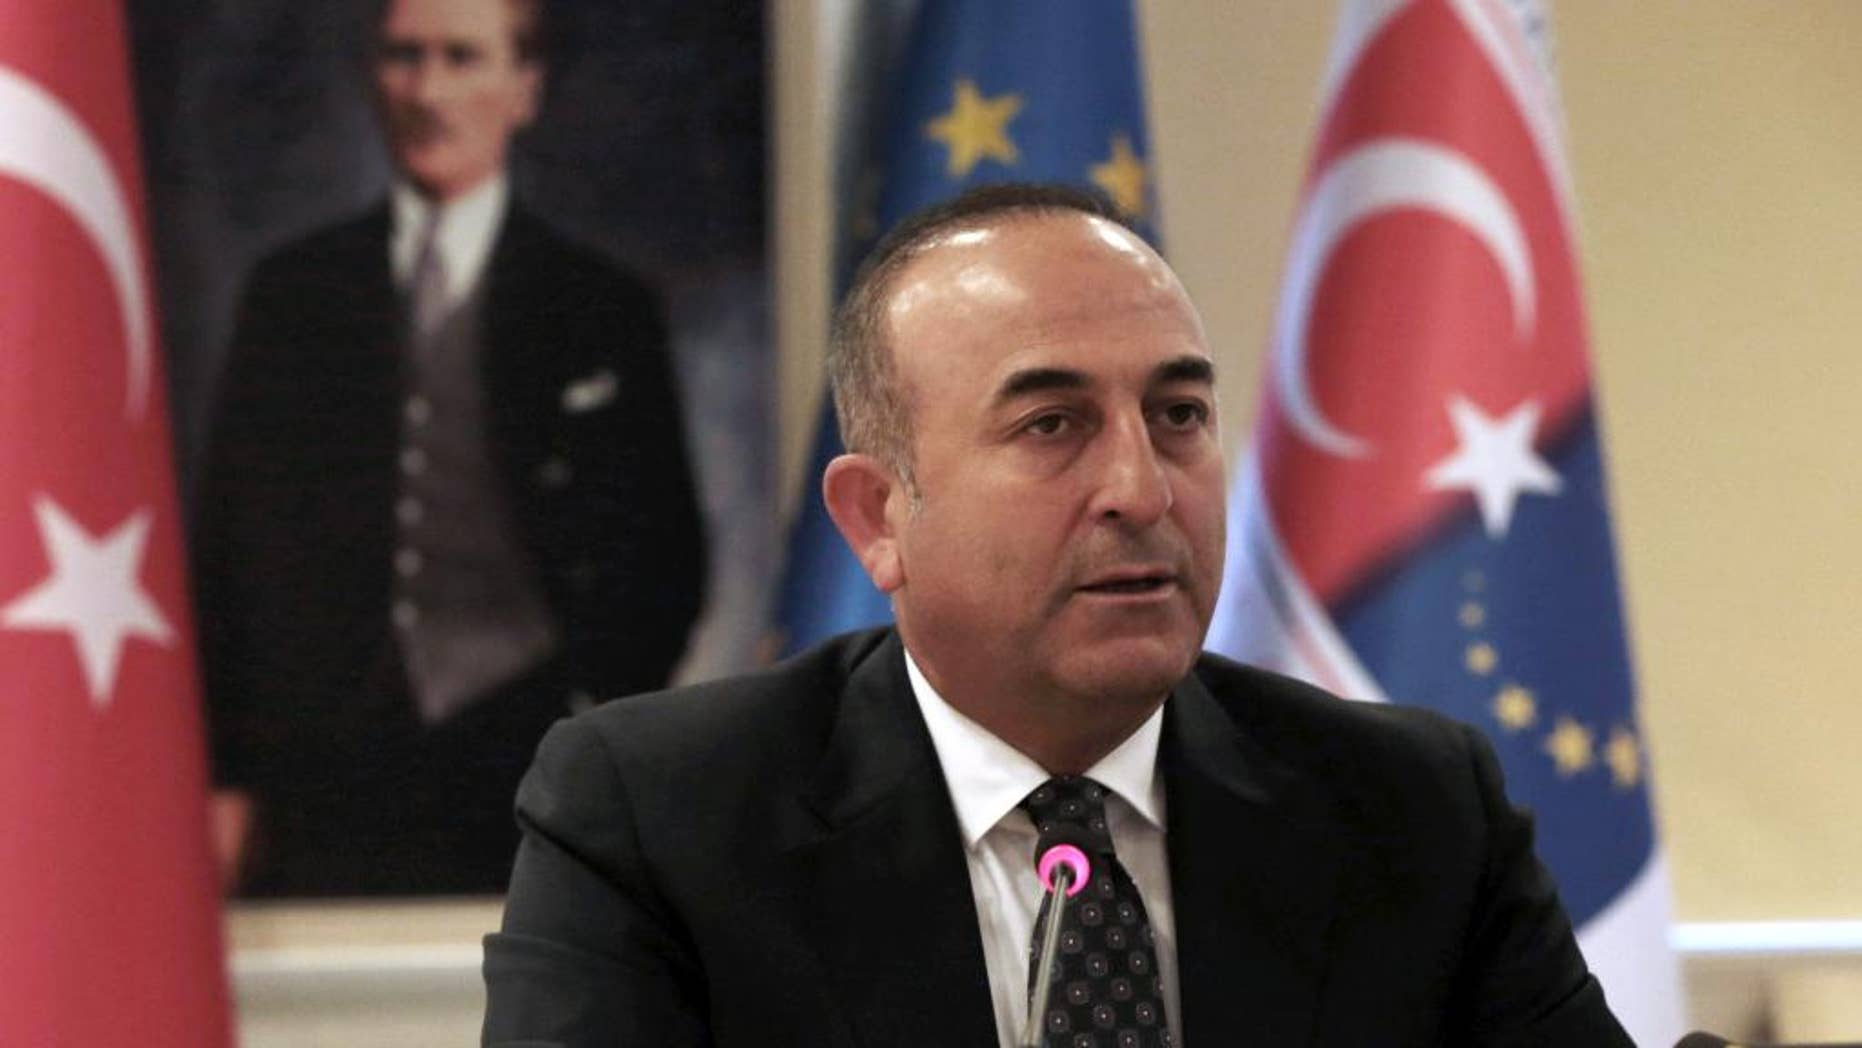 """This is an image taken Wednesday May 4, 2016  of Turkish Foreign Minister Mevlut Cavusoglu speaks during a news conference in Ankara, Turkey. Turkey has hailed the European Union executive Commission's recommendation to grant Turkish citizens the right to travel to Europe without visas as """"a new page"""" in relations between Turkey and the EU. (AP Photo/Burhan Ozbilici, File)"""